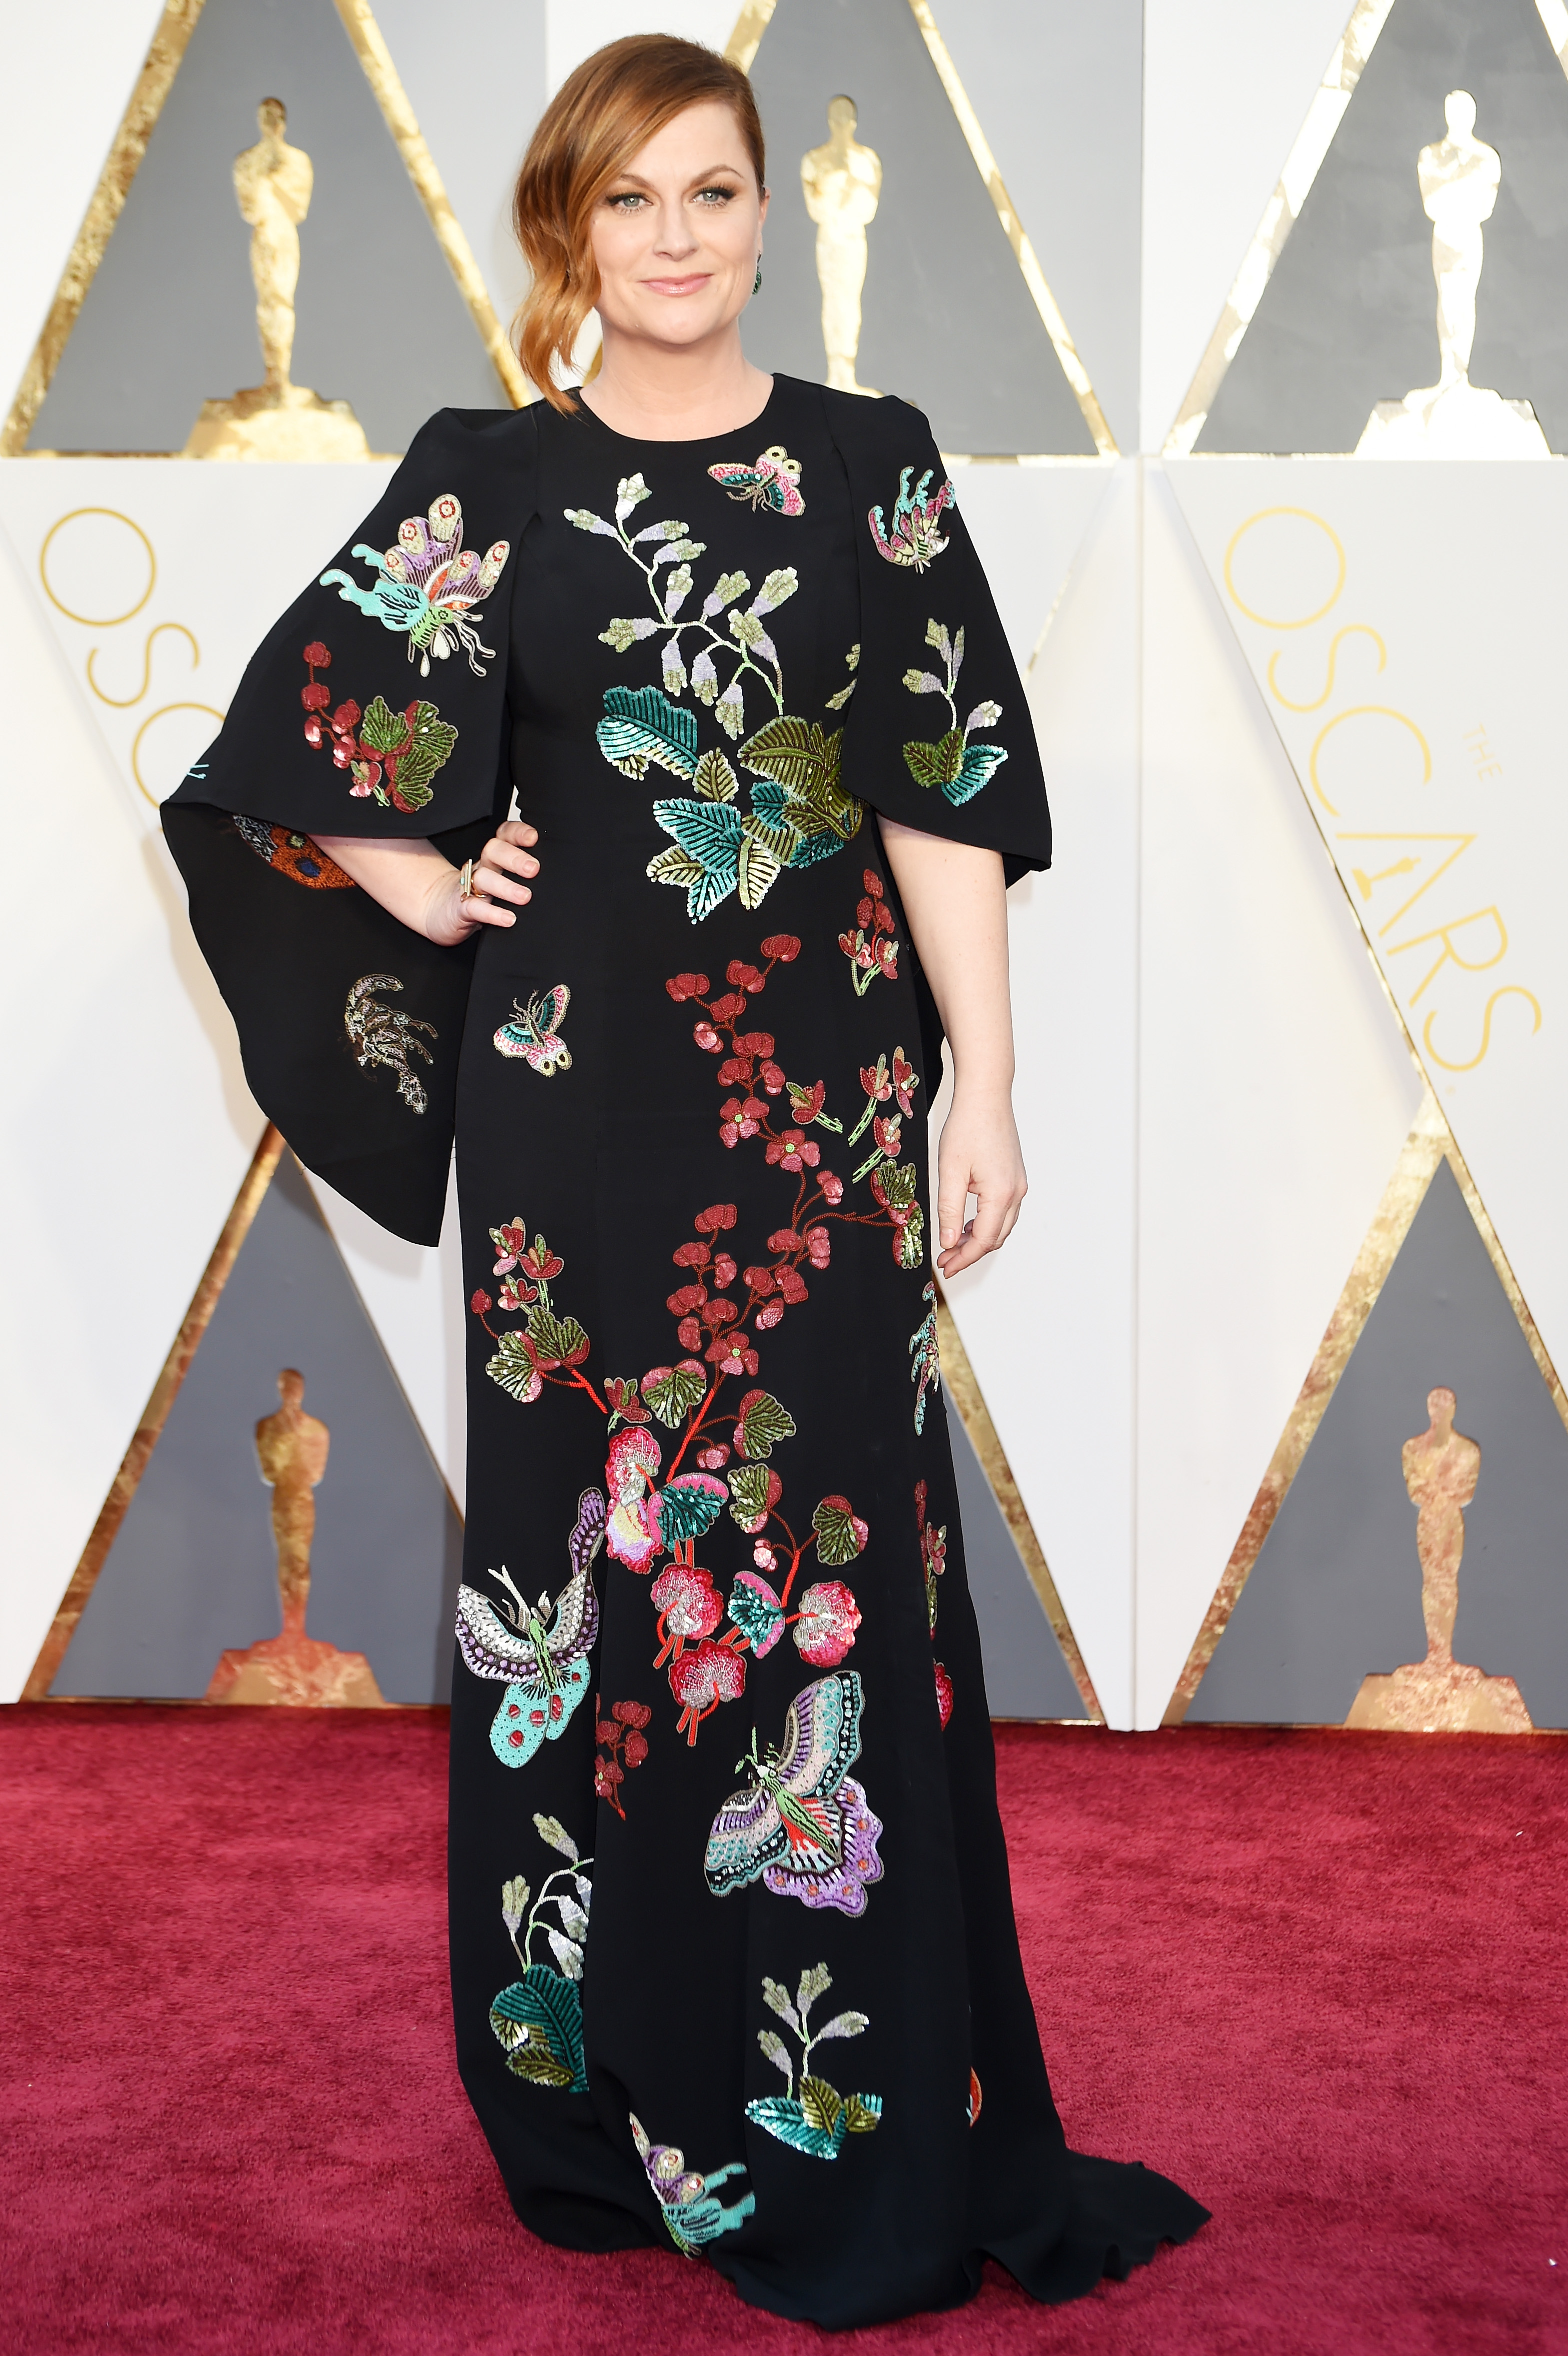 Amy Poehler attends the 88th Annual Academy Awards on Feb. 28, 2016 in Hollywood, Calif.